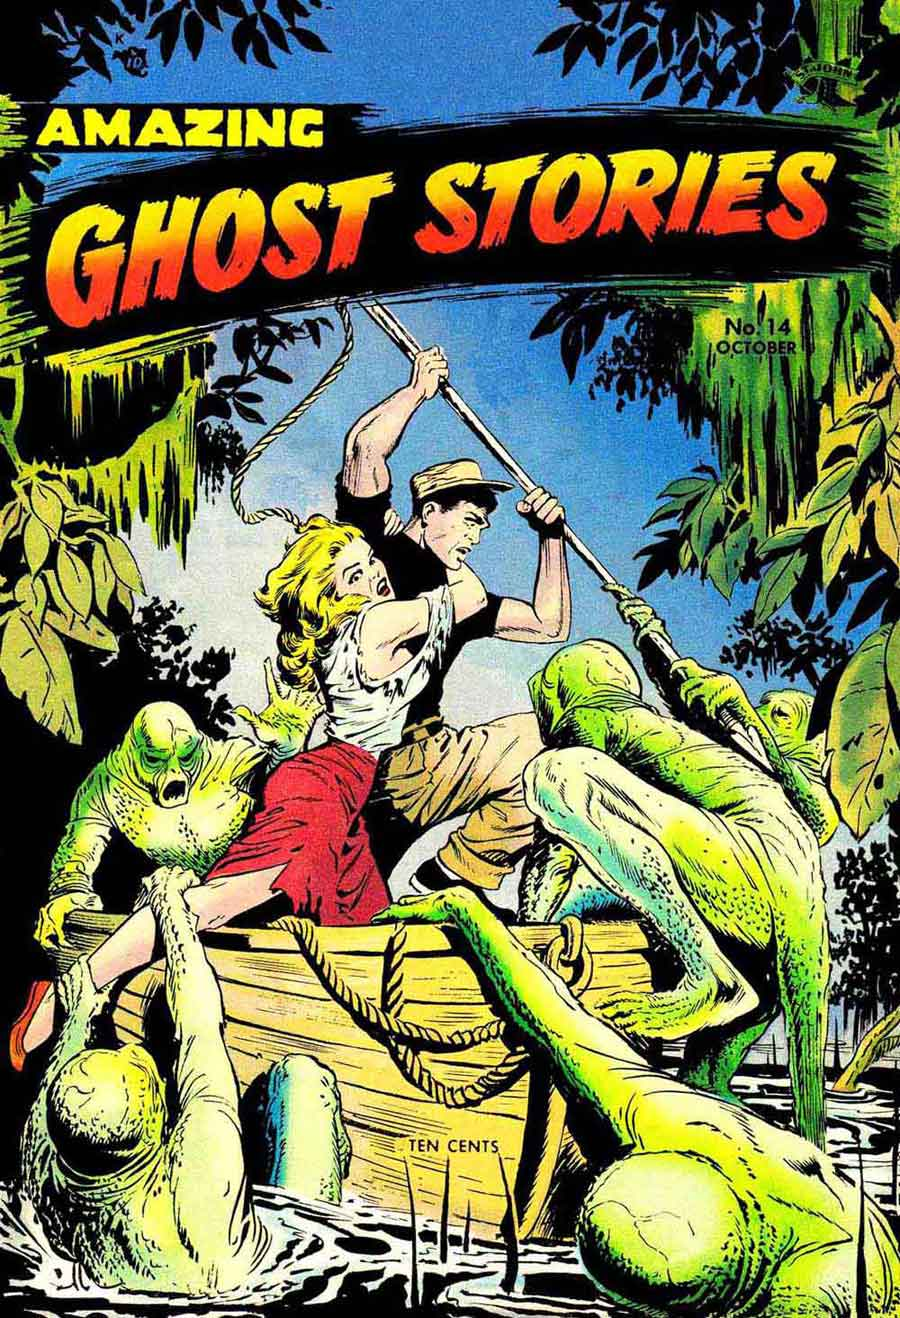 Amazing Ghost Stories v1 #14 - Matt Baker 1950s golden age comic book cover art